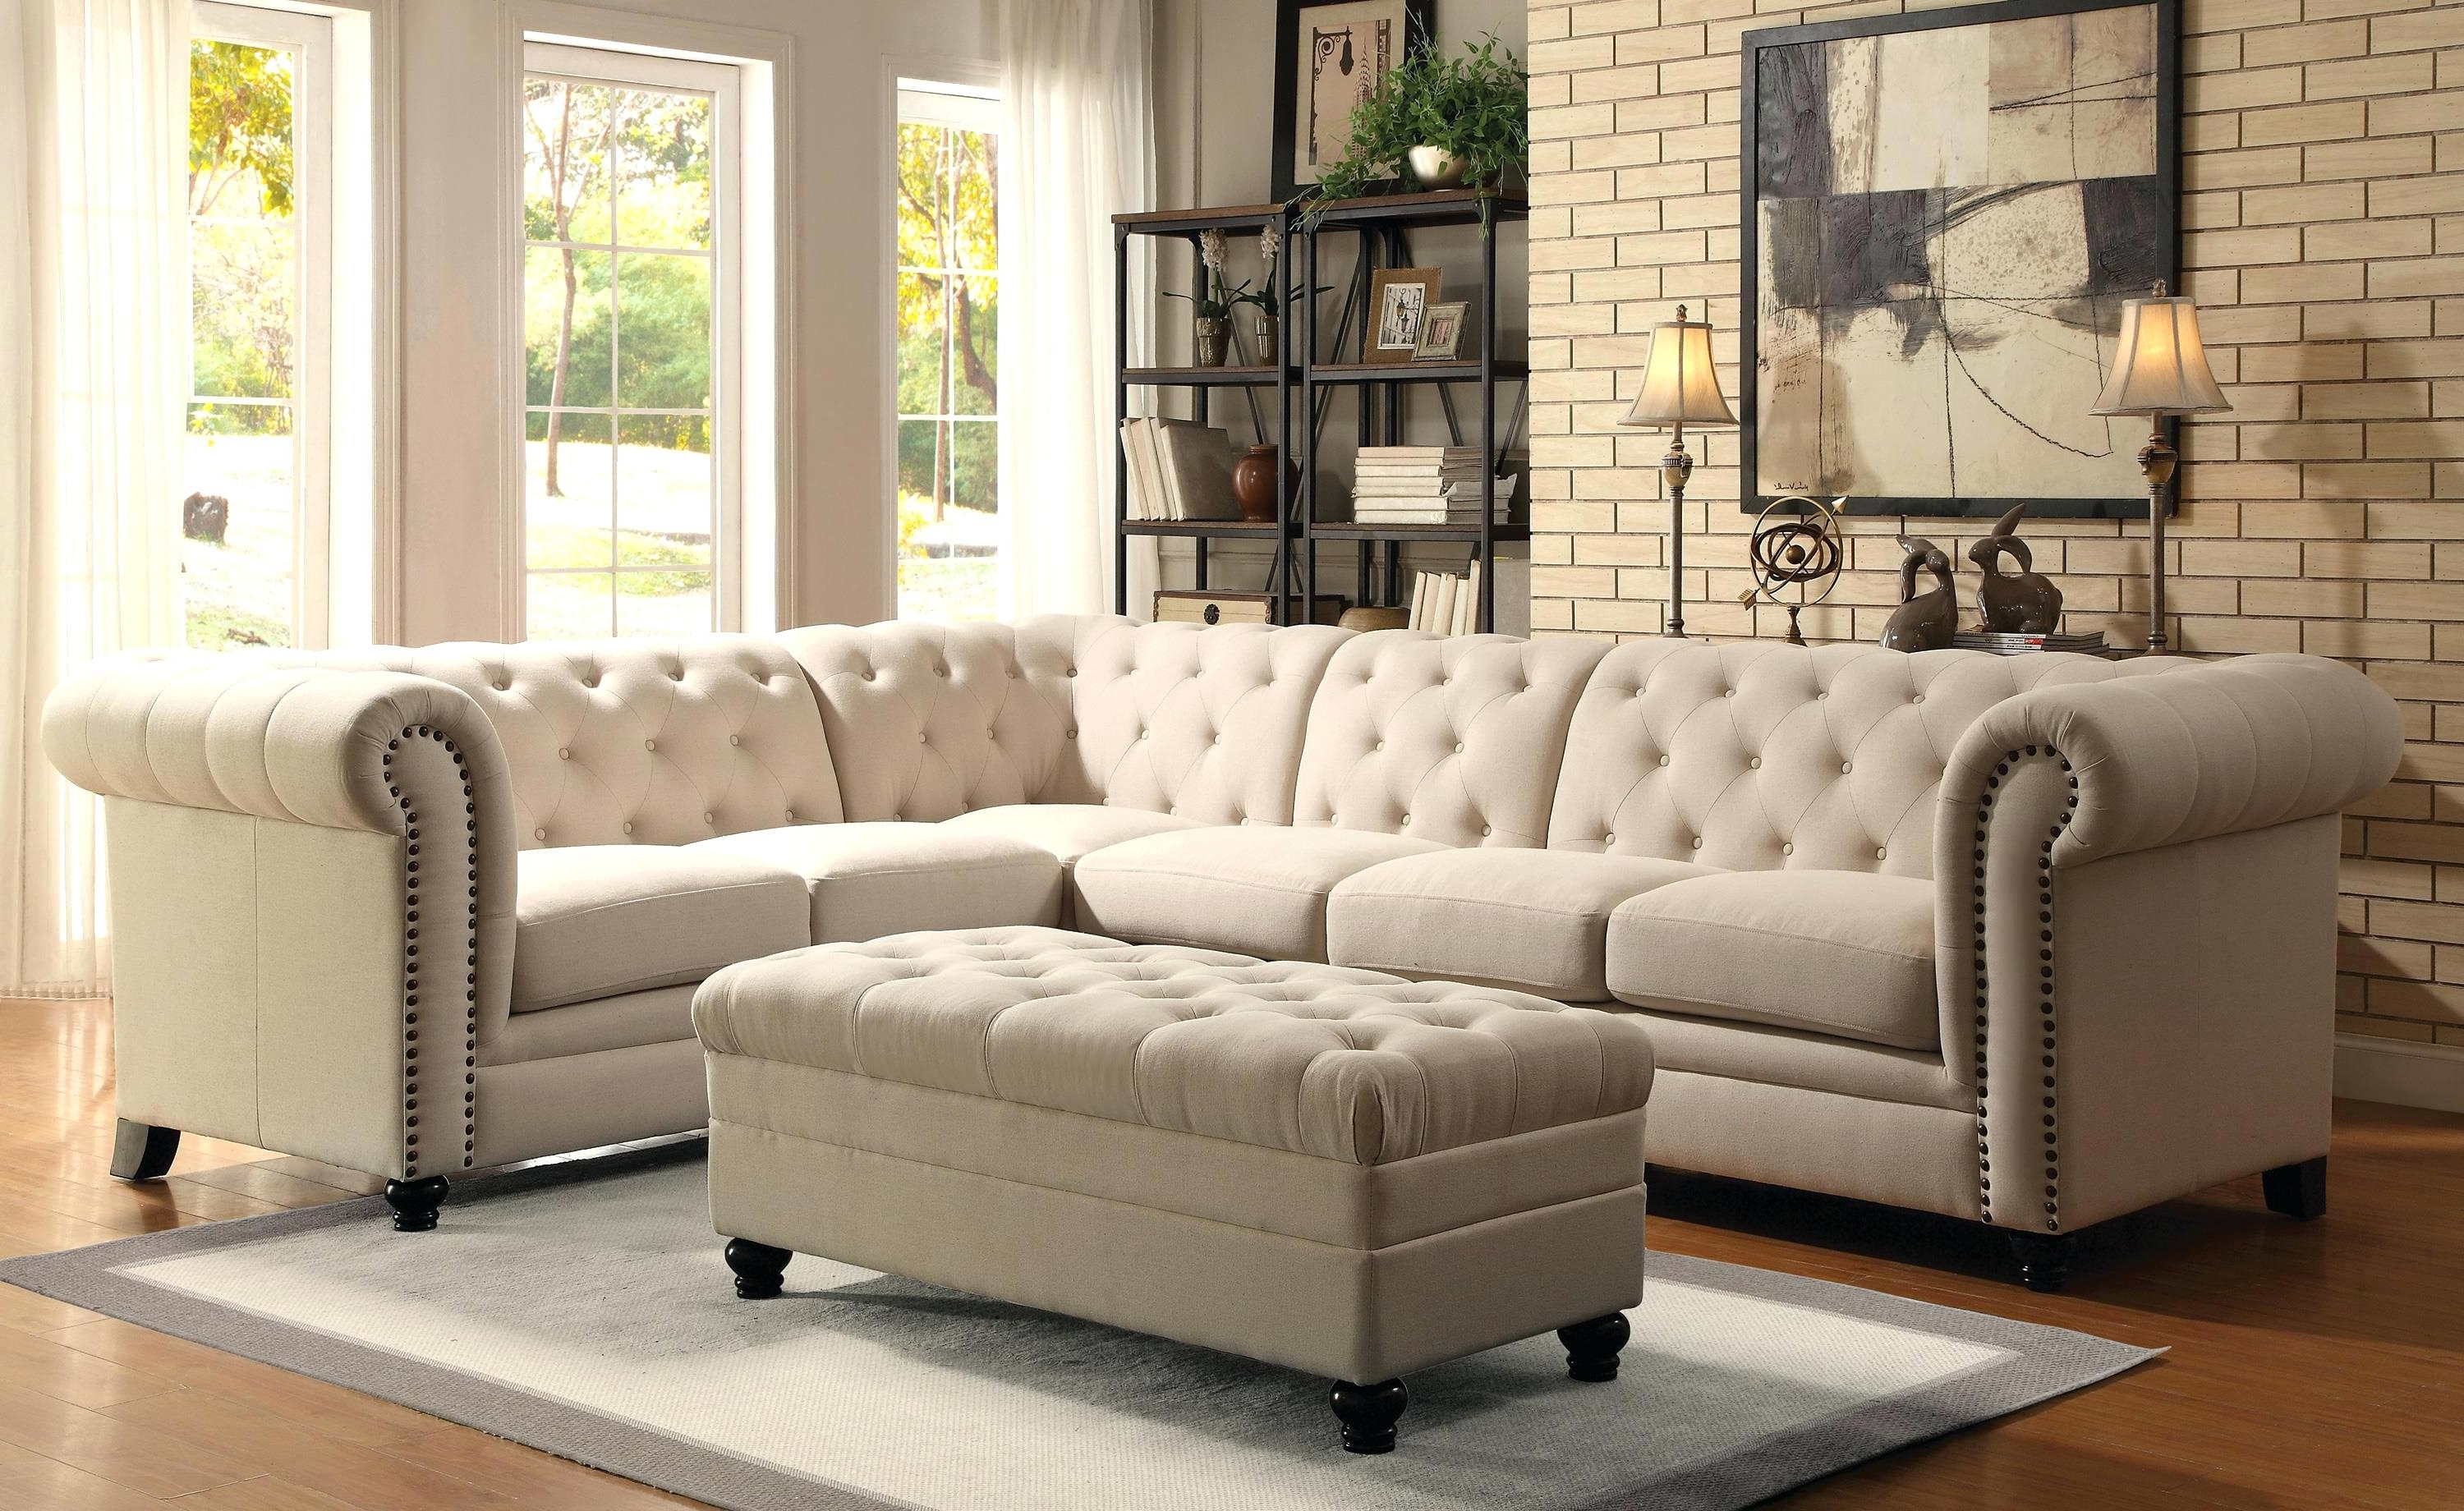 Most Popular Best Sectional Sofa Covers Diy Sofas Dallas Texas Bed Cheap Intended For Dallas Texas Sectional Sofas (View 7 of 15)